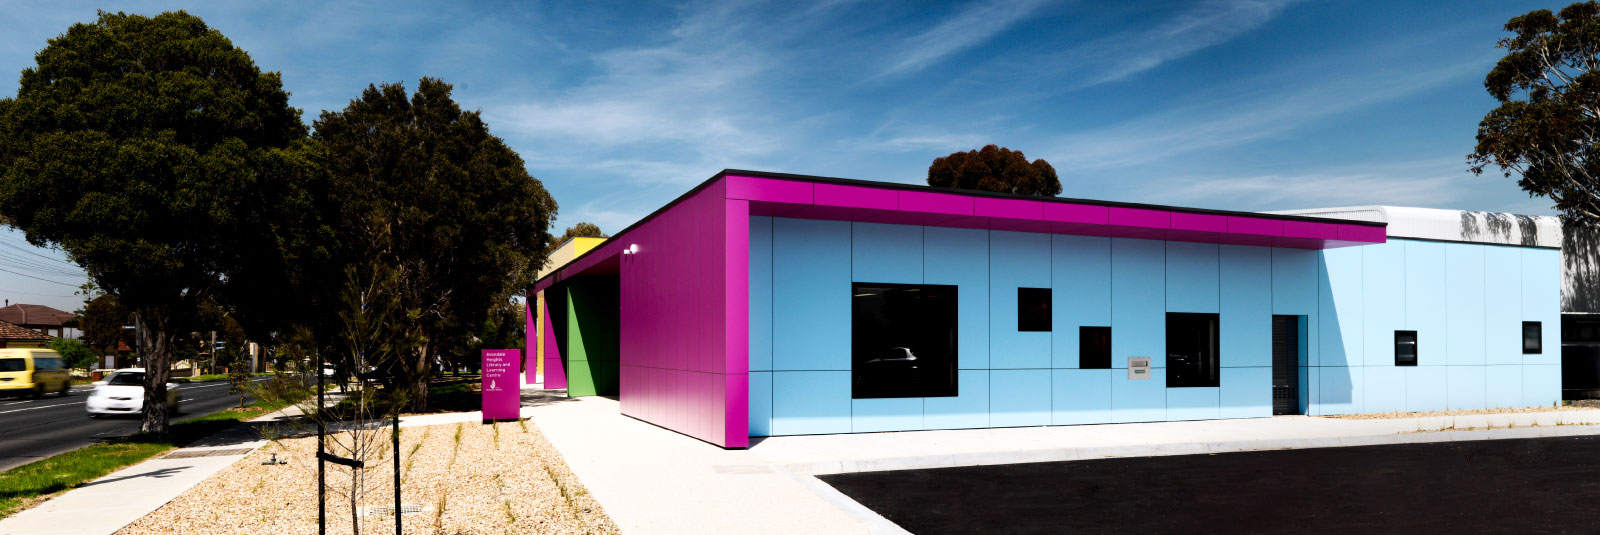 H2o Architects Melbourne-Avondale Heights Library and Learning Centre-02